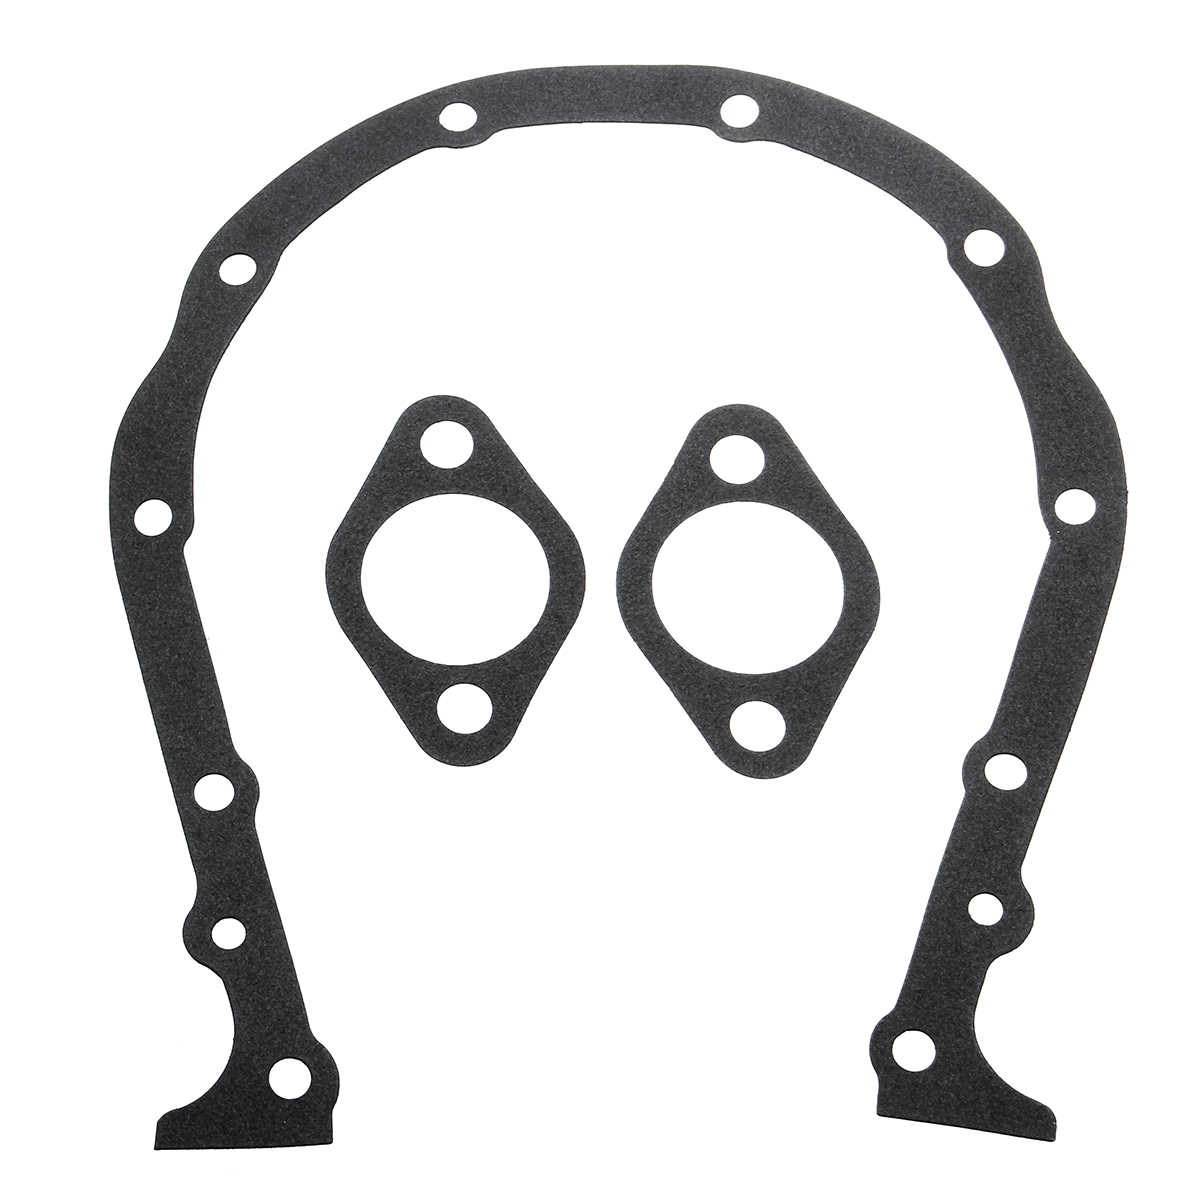 1 Set For BBC Timing Chain Cover Gasket For BB Chevy 396 402 427 454 472  502 Gears Front With 2 Water Pump Gaskets